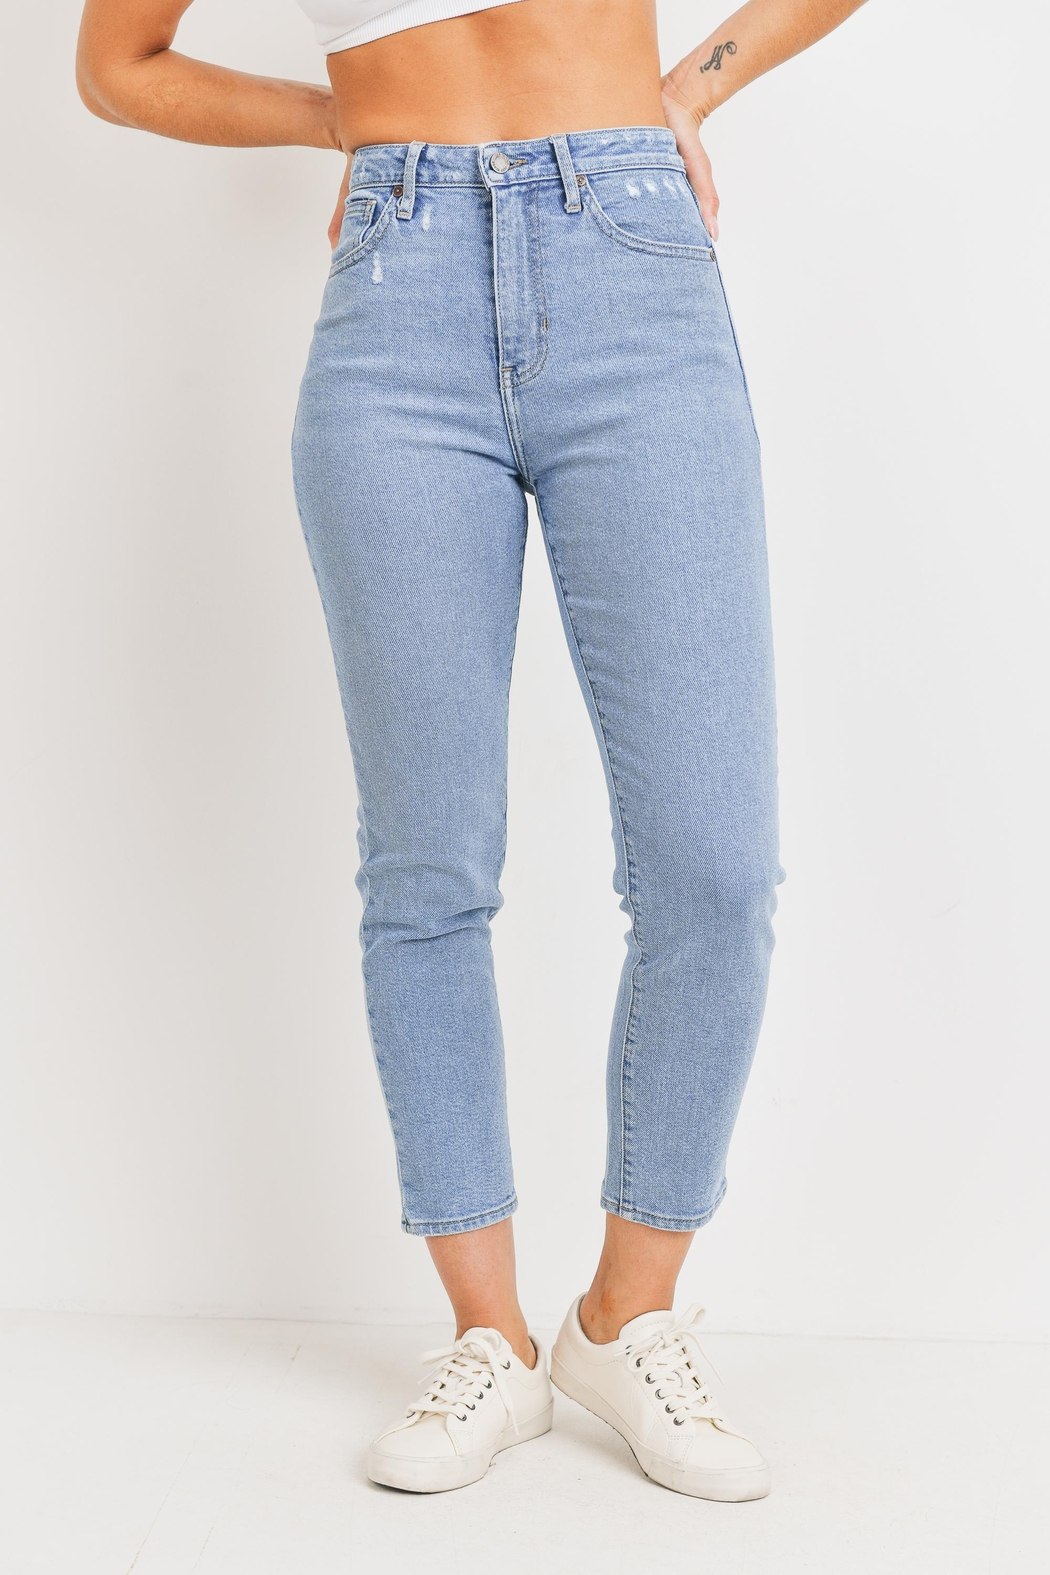 Just Panmaco Inc. High Rise Mom Denim Jeans - Main Image